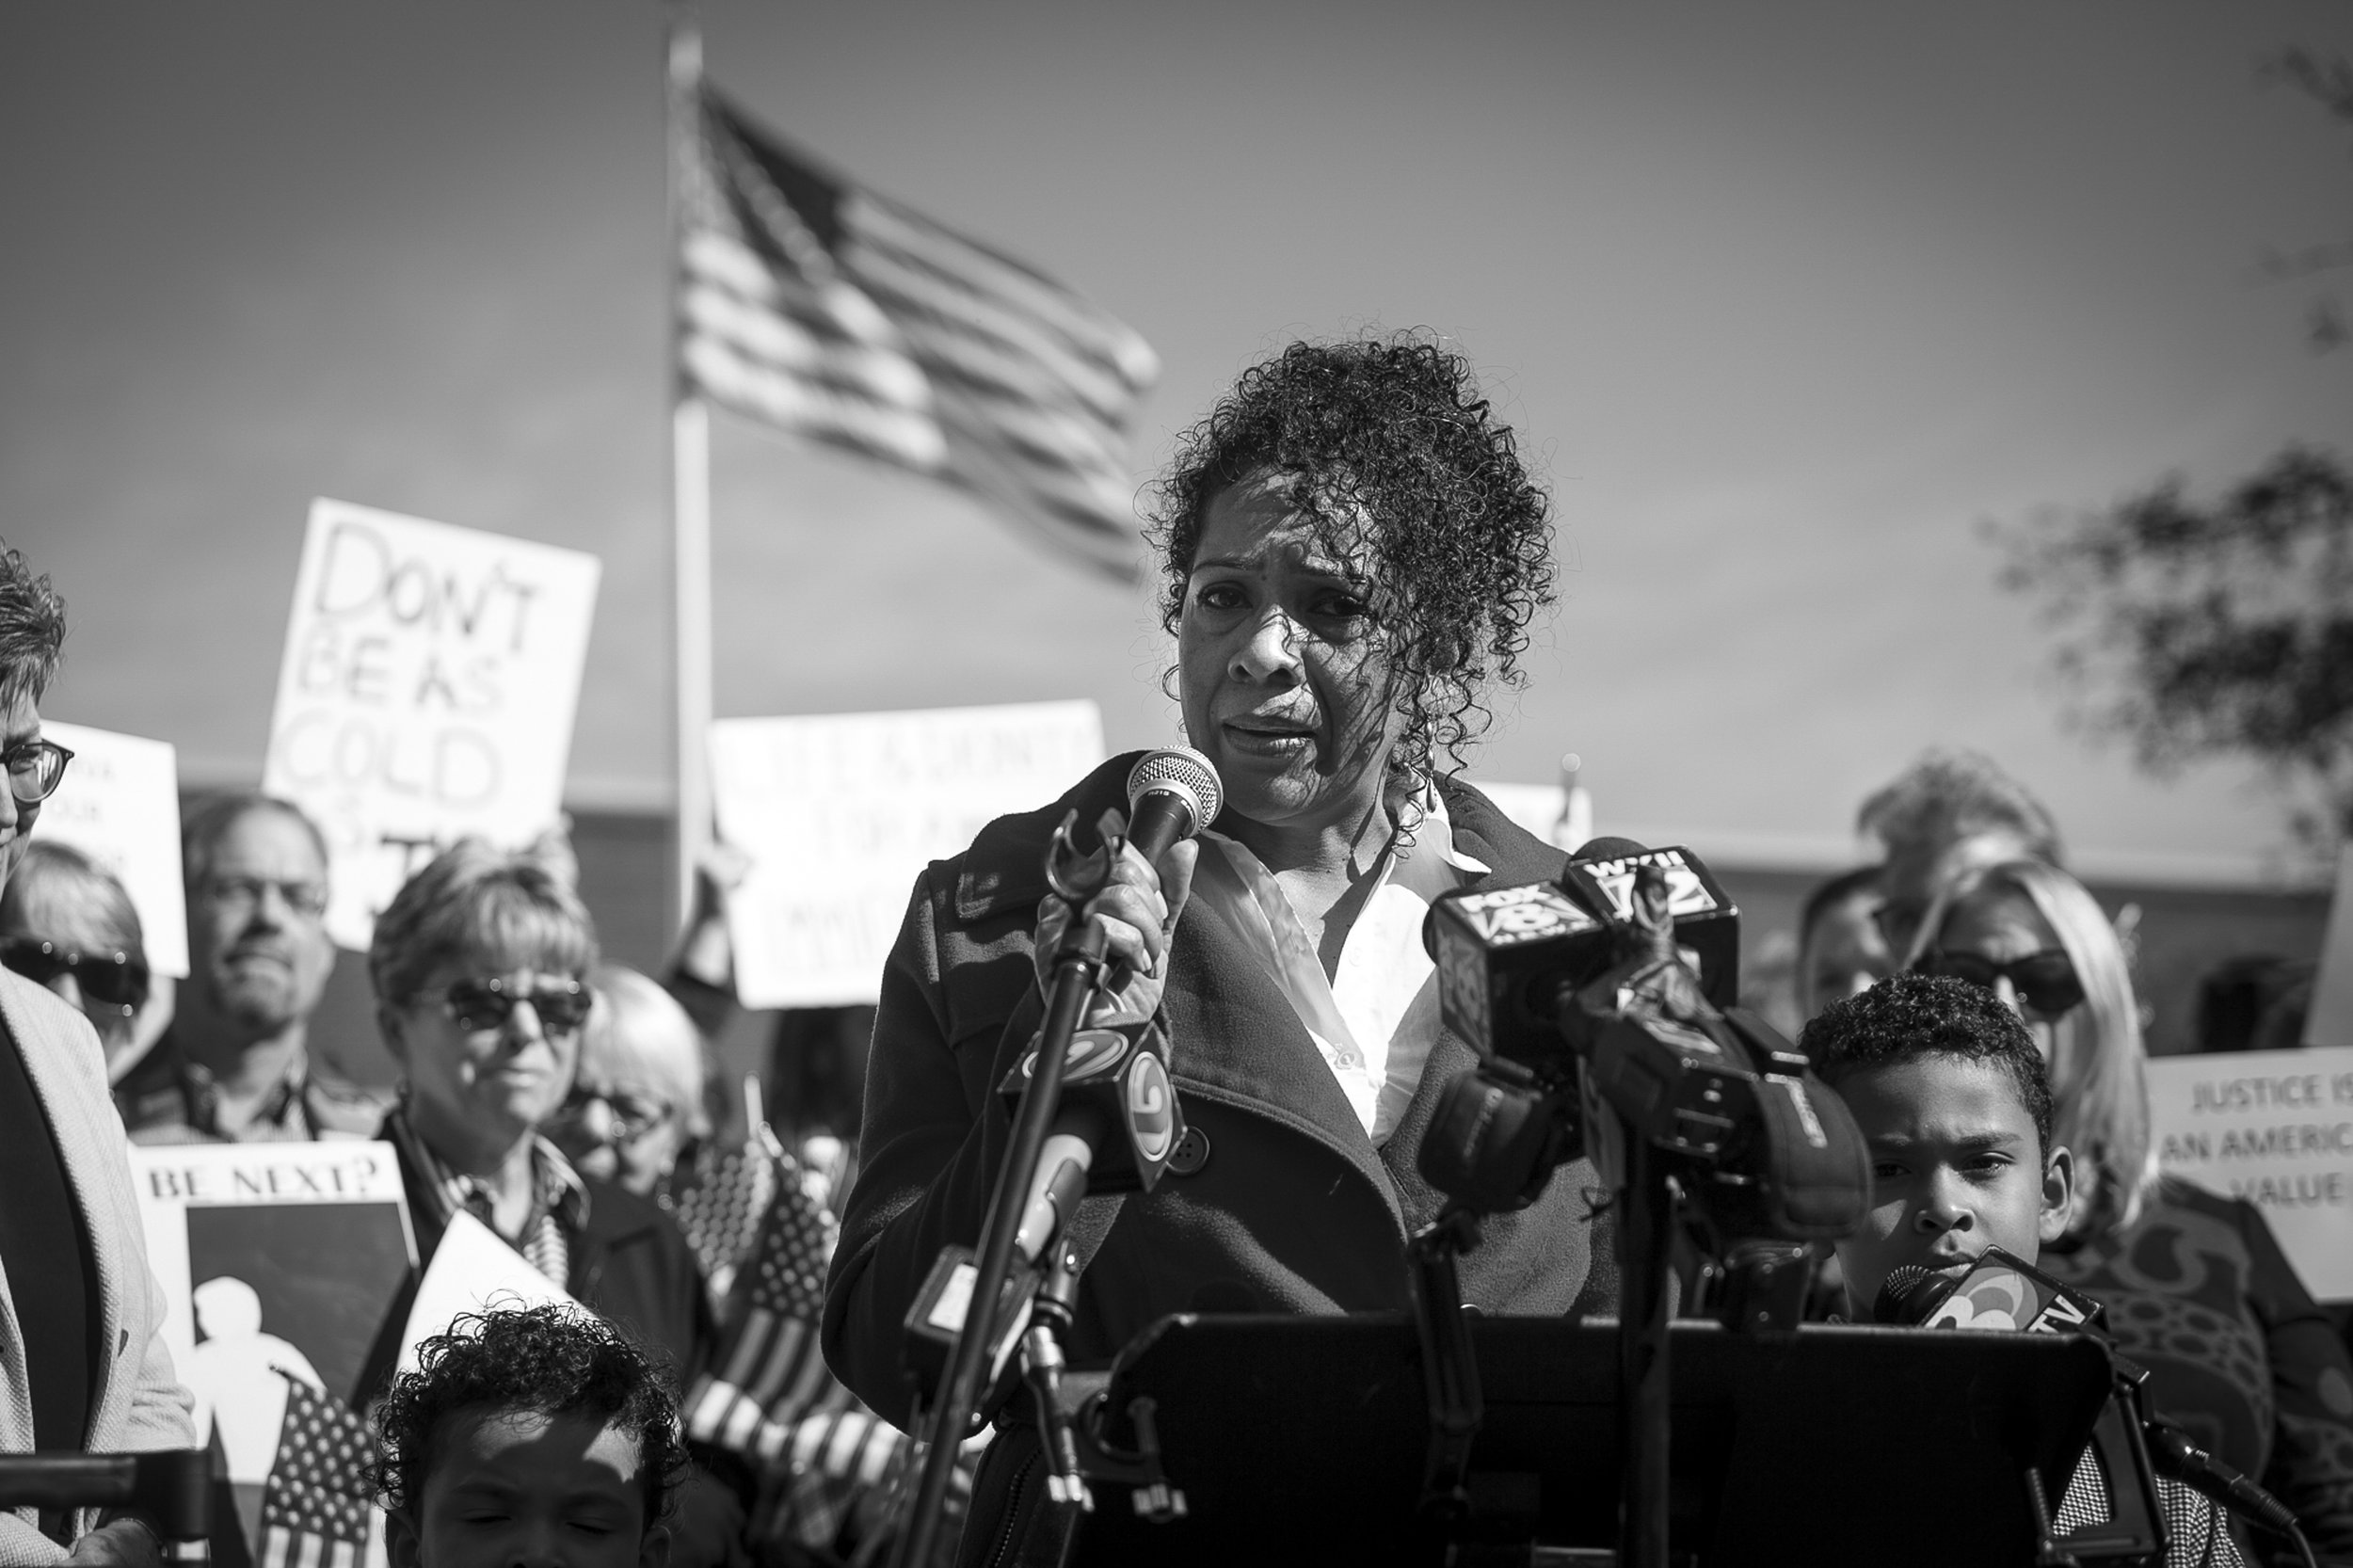 """Minerva addresses the media before her meeting with ICE at an immigration courthouse in Charlotte, NC on Nov. 16, 2017. """"I really don't know what's going to happen in there,"""" Garcia said. """"I'm scared."""""""